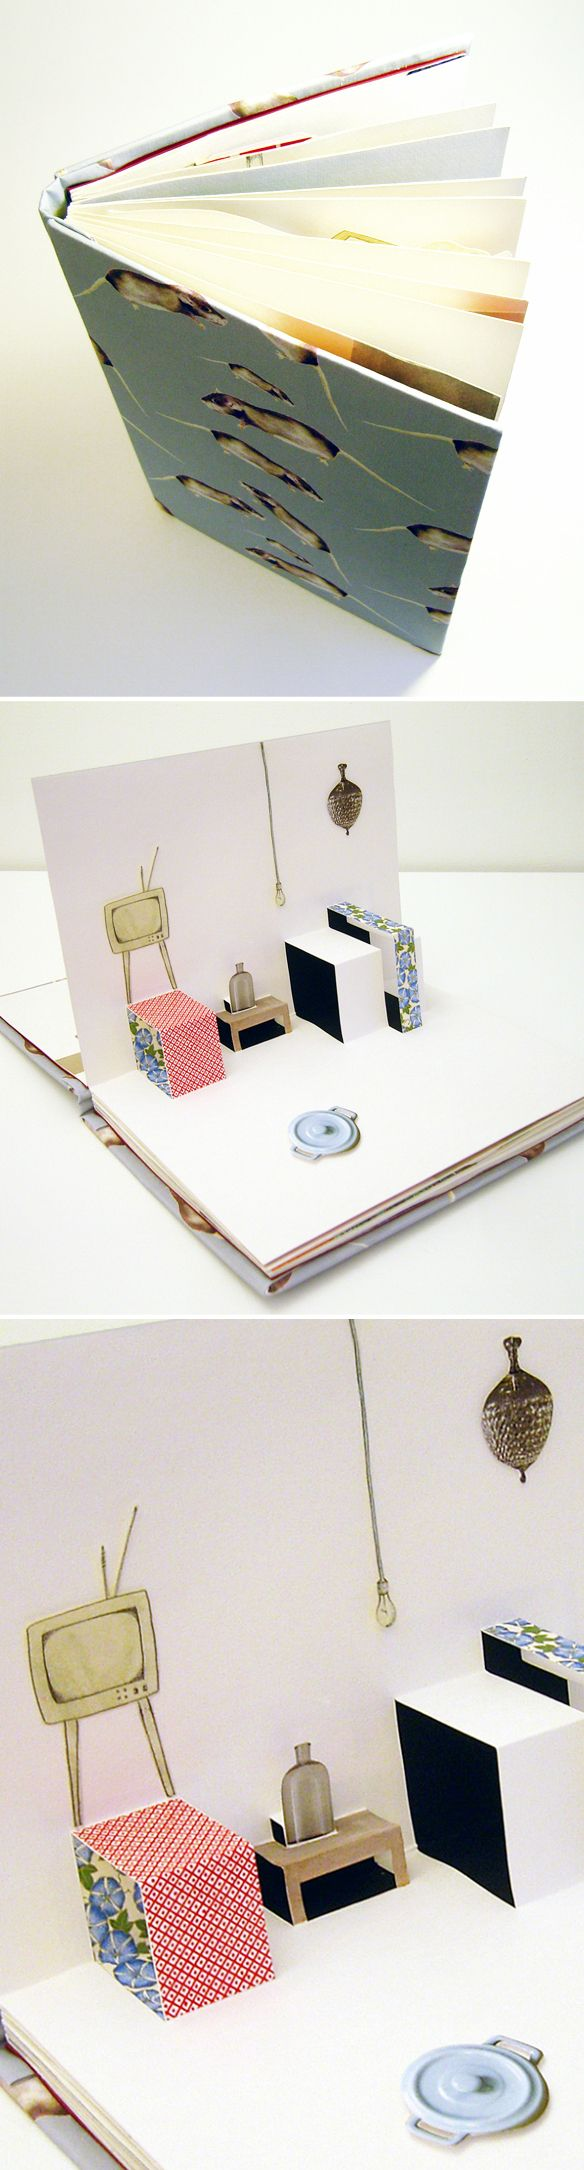 http://www.thejealouscurator.com/blog/wp-content/uploads/2014/01/hale_popupbook.jpg  Simple but effective pop-up ideas.